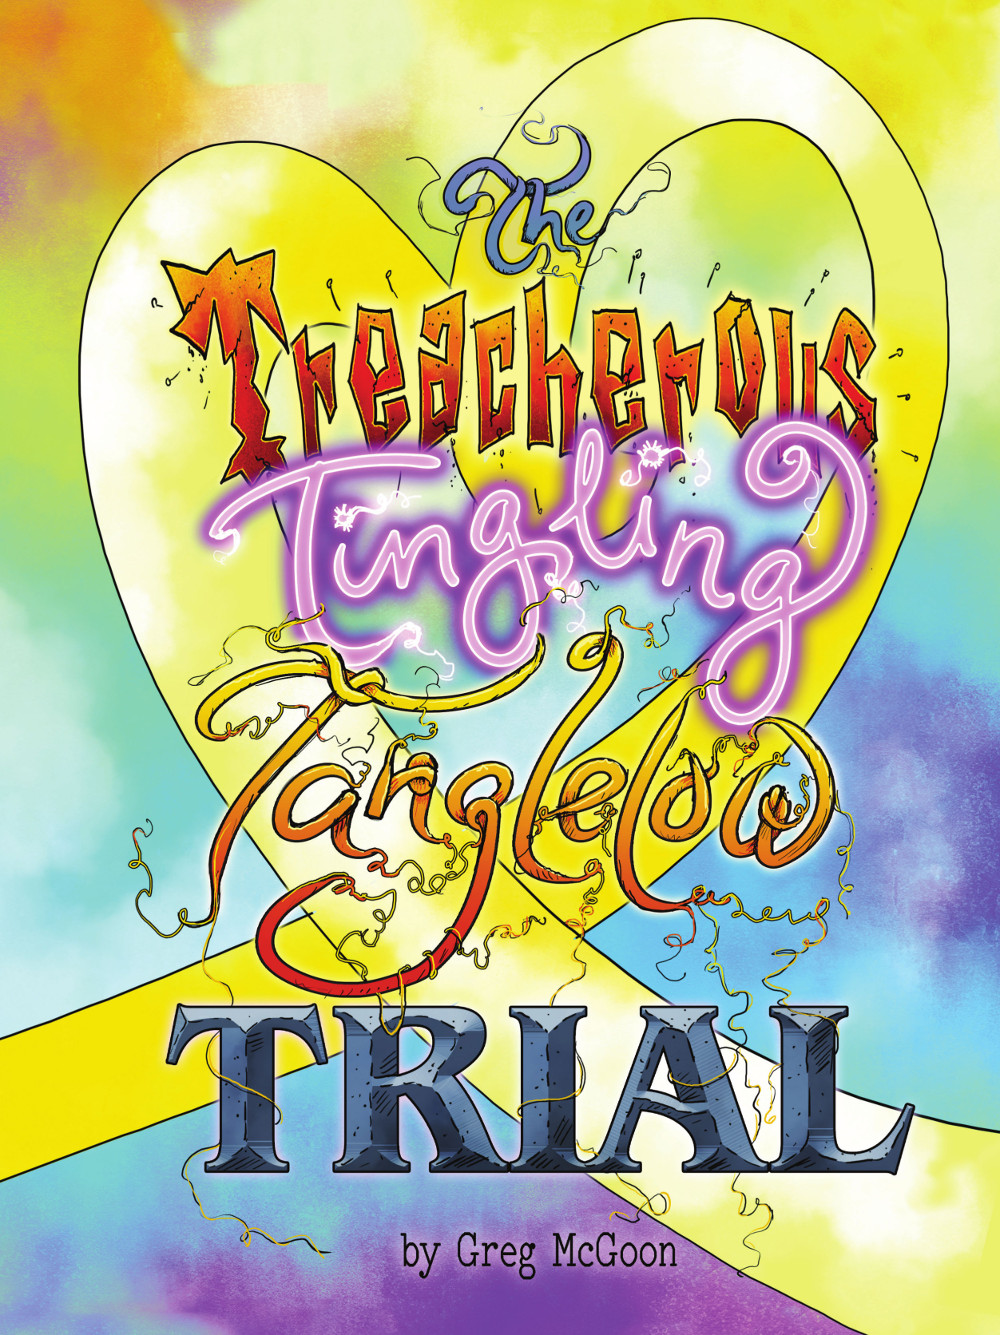 The Treacherous Tingling Tanglelow Trial